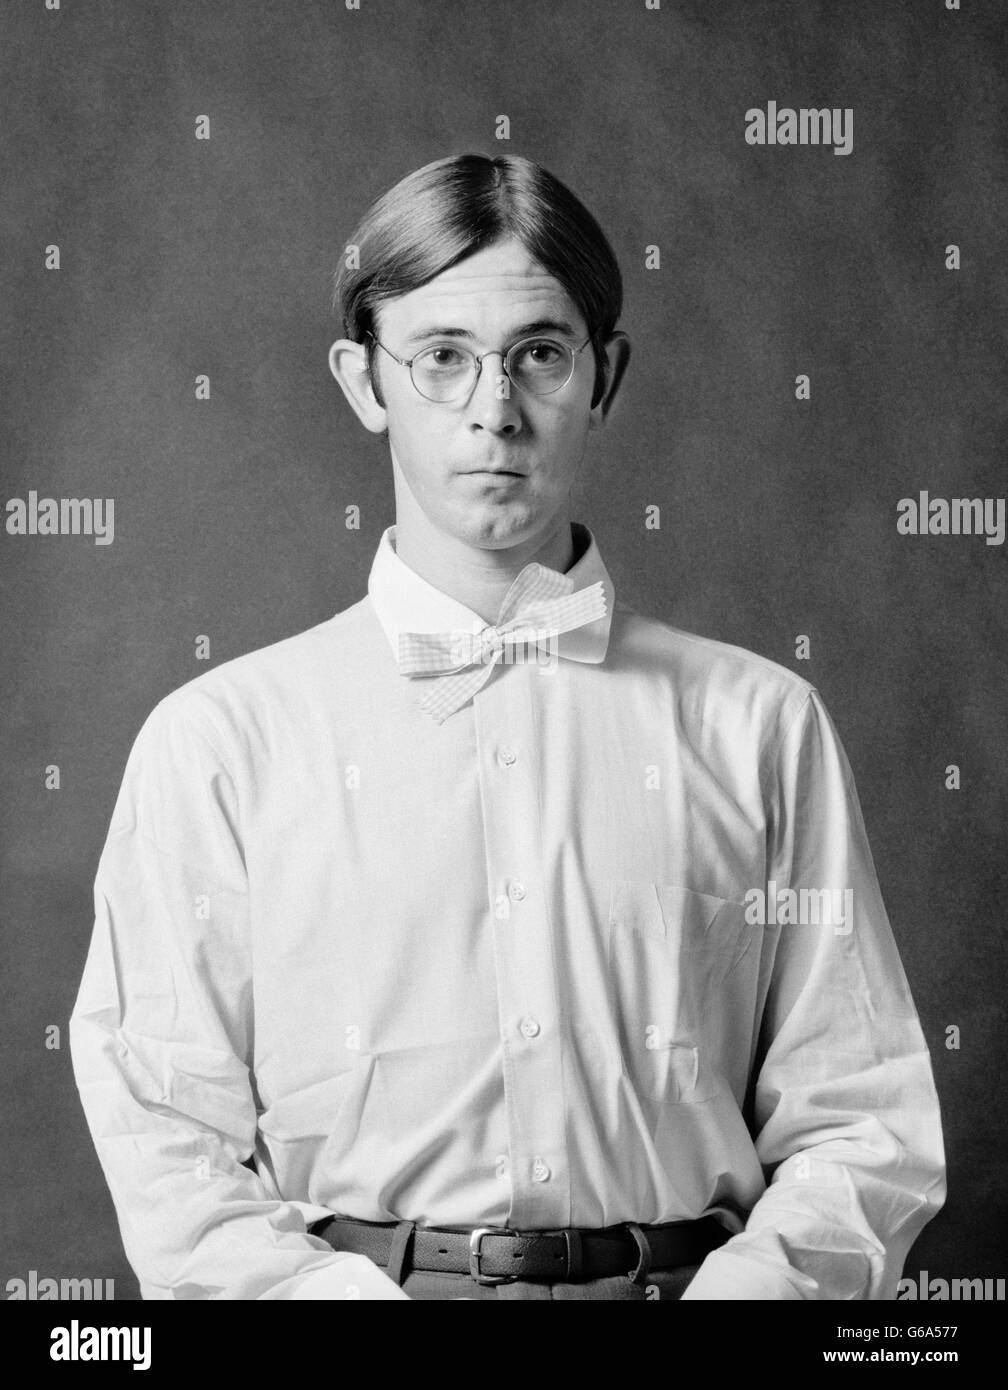 1970s PORTRAIT GEEKY DORKY SHY WALLFLOWER YOUNG MAN WEARING SPECTACLES WHITE SHIRT AND BOW TIE - Stock Image